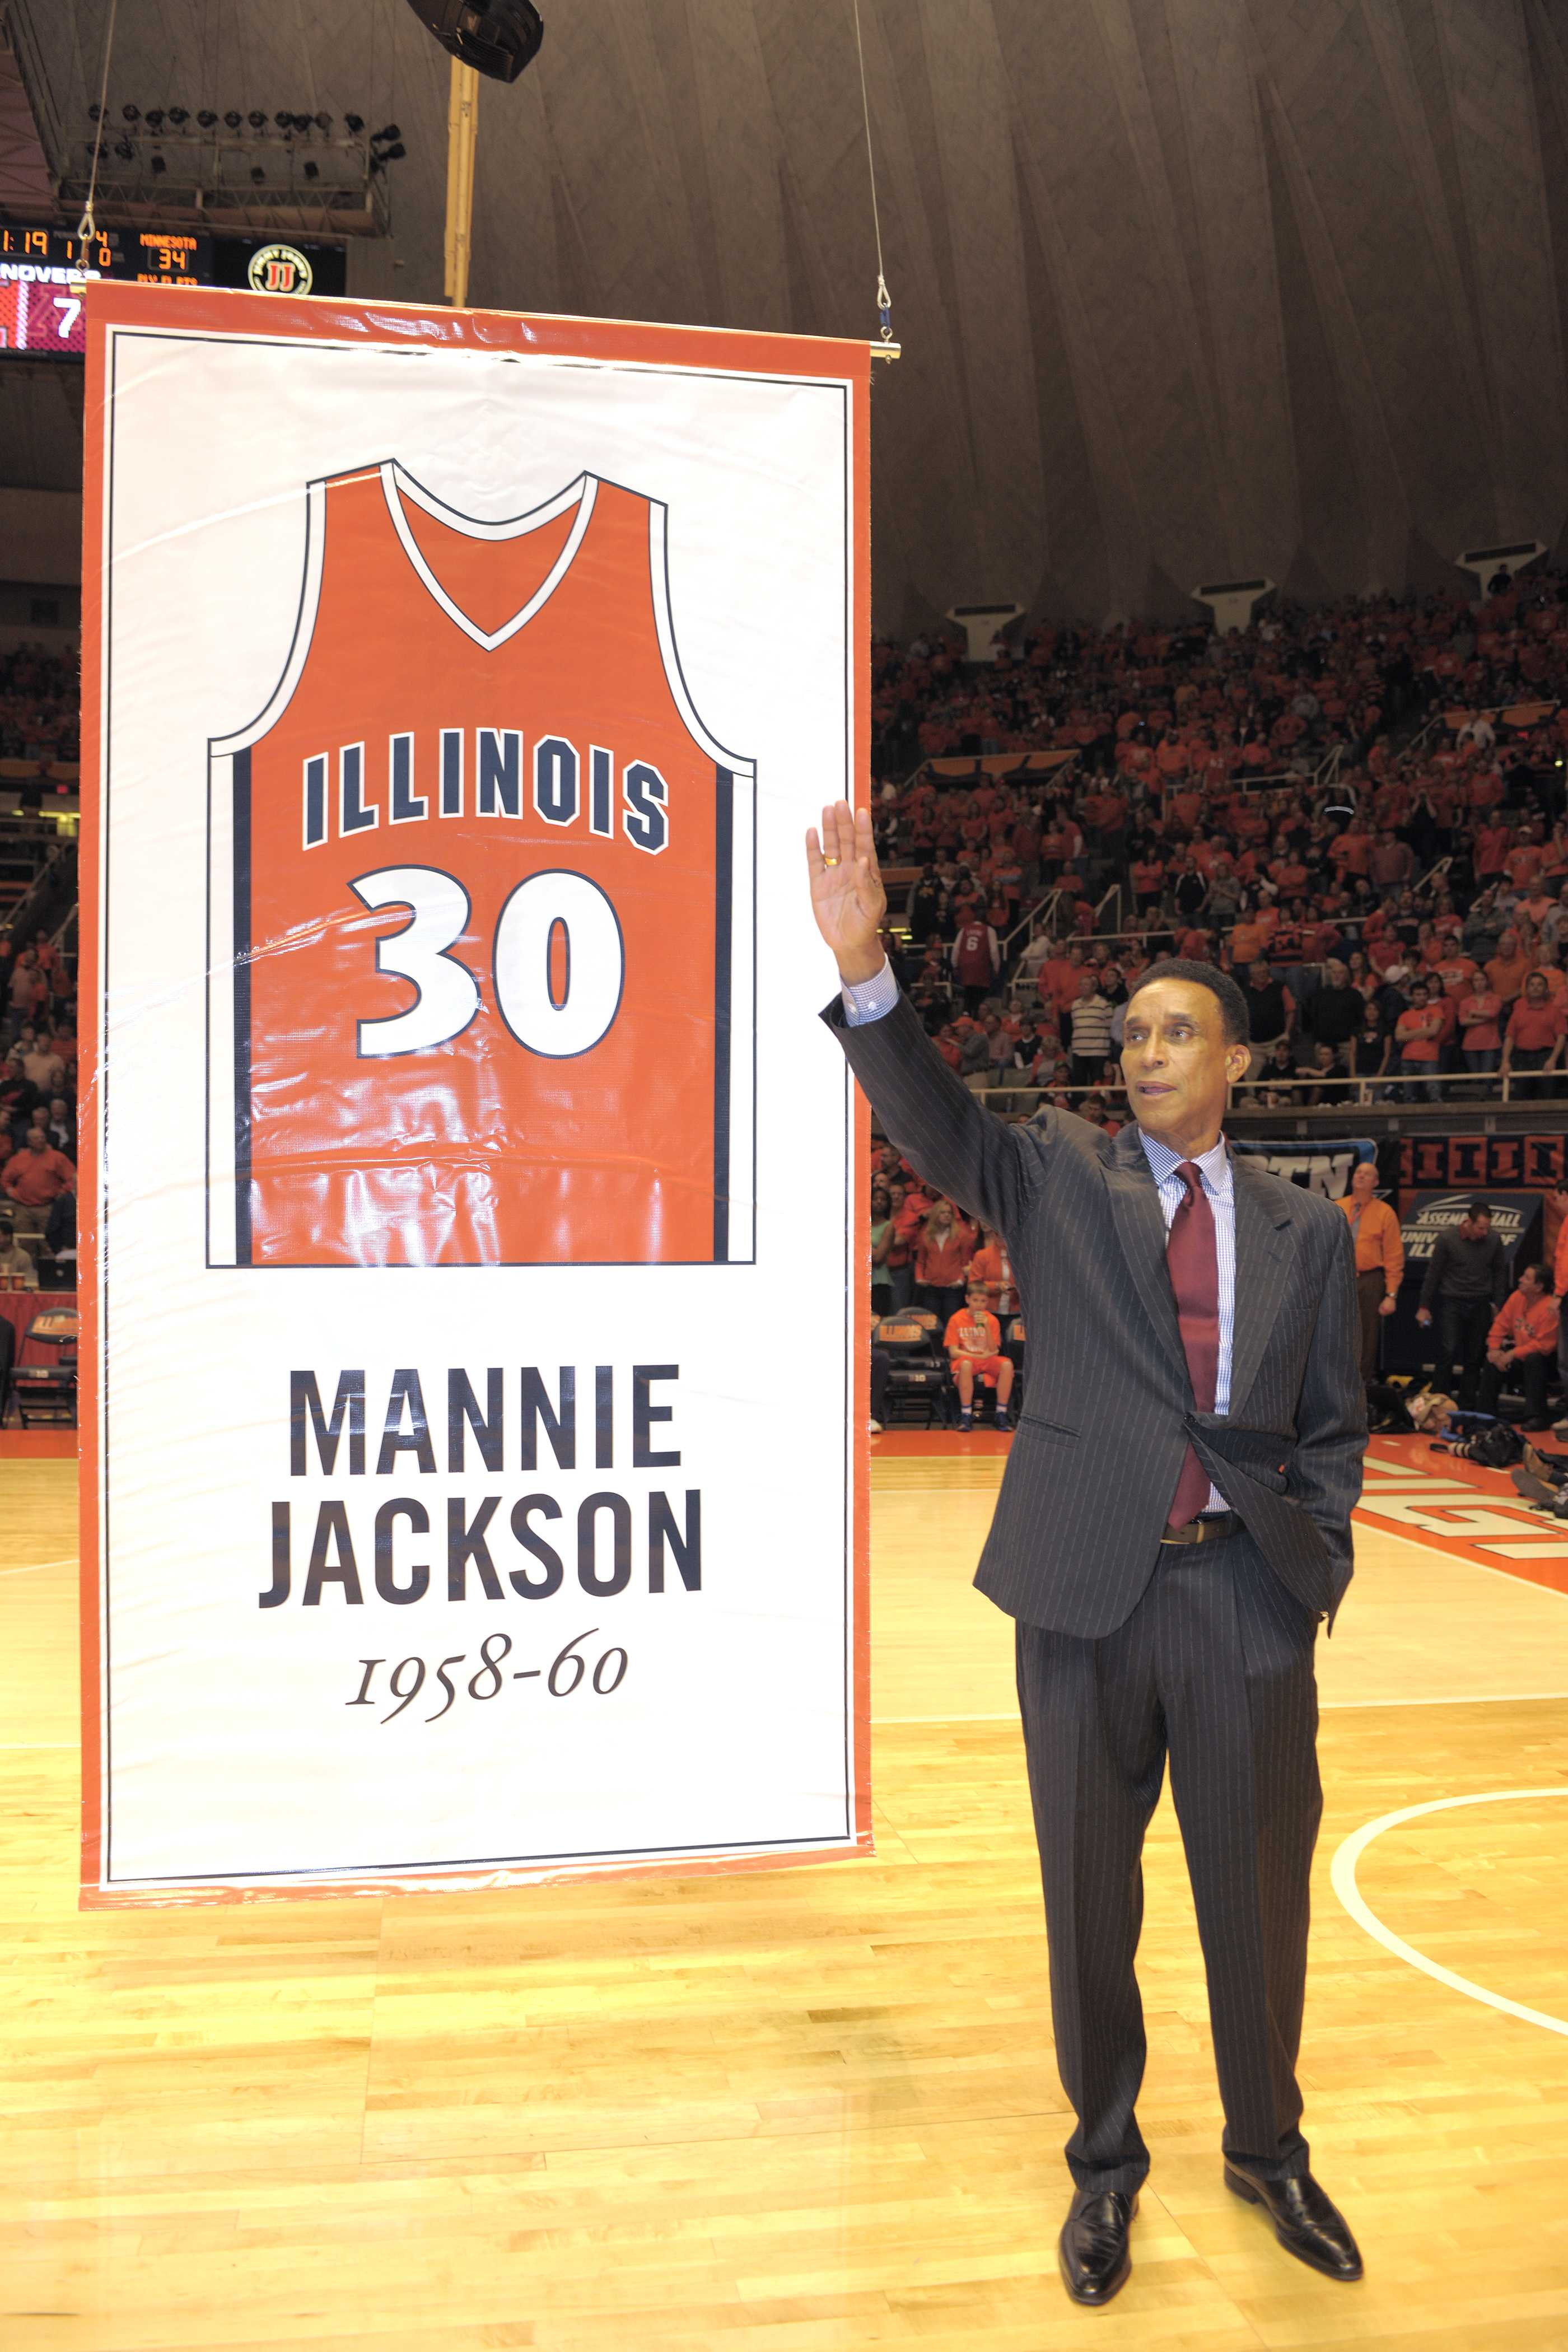 Mannie+Jackson+stands+on+court+as+his+number+is+prepared+to+be+hung+in+the+rafters+at+then-Assembly+Hall+in+early%26nbsp%3B2013.+Jackson+was+a+pioneer+for+Illini+basketball+as+one+of+the+first+African+Americans+to+letter+for+the+team.%26nbsp%3B